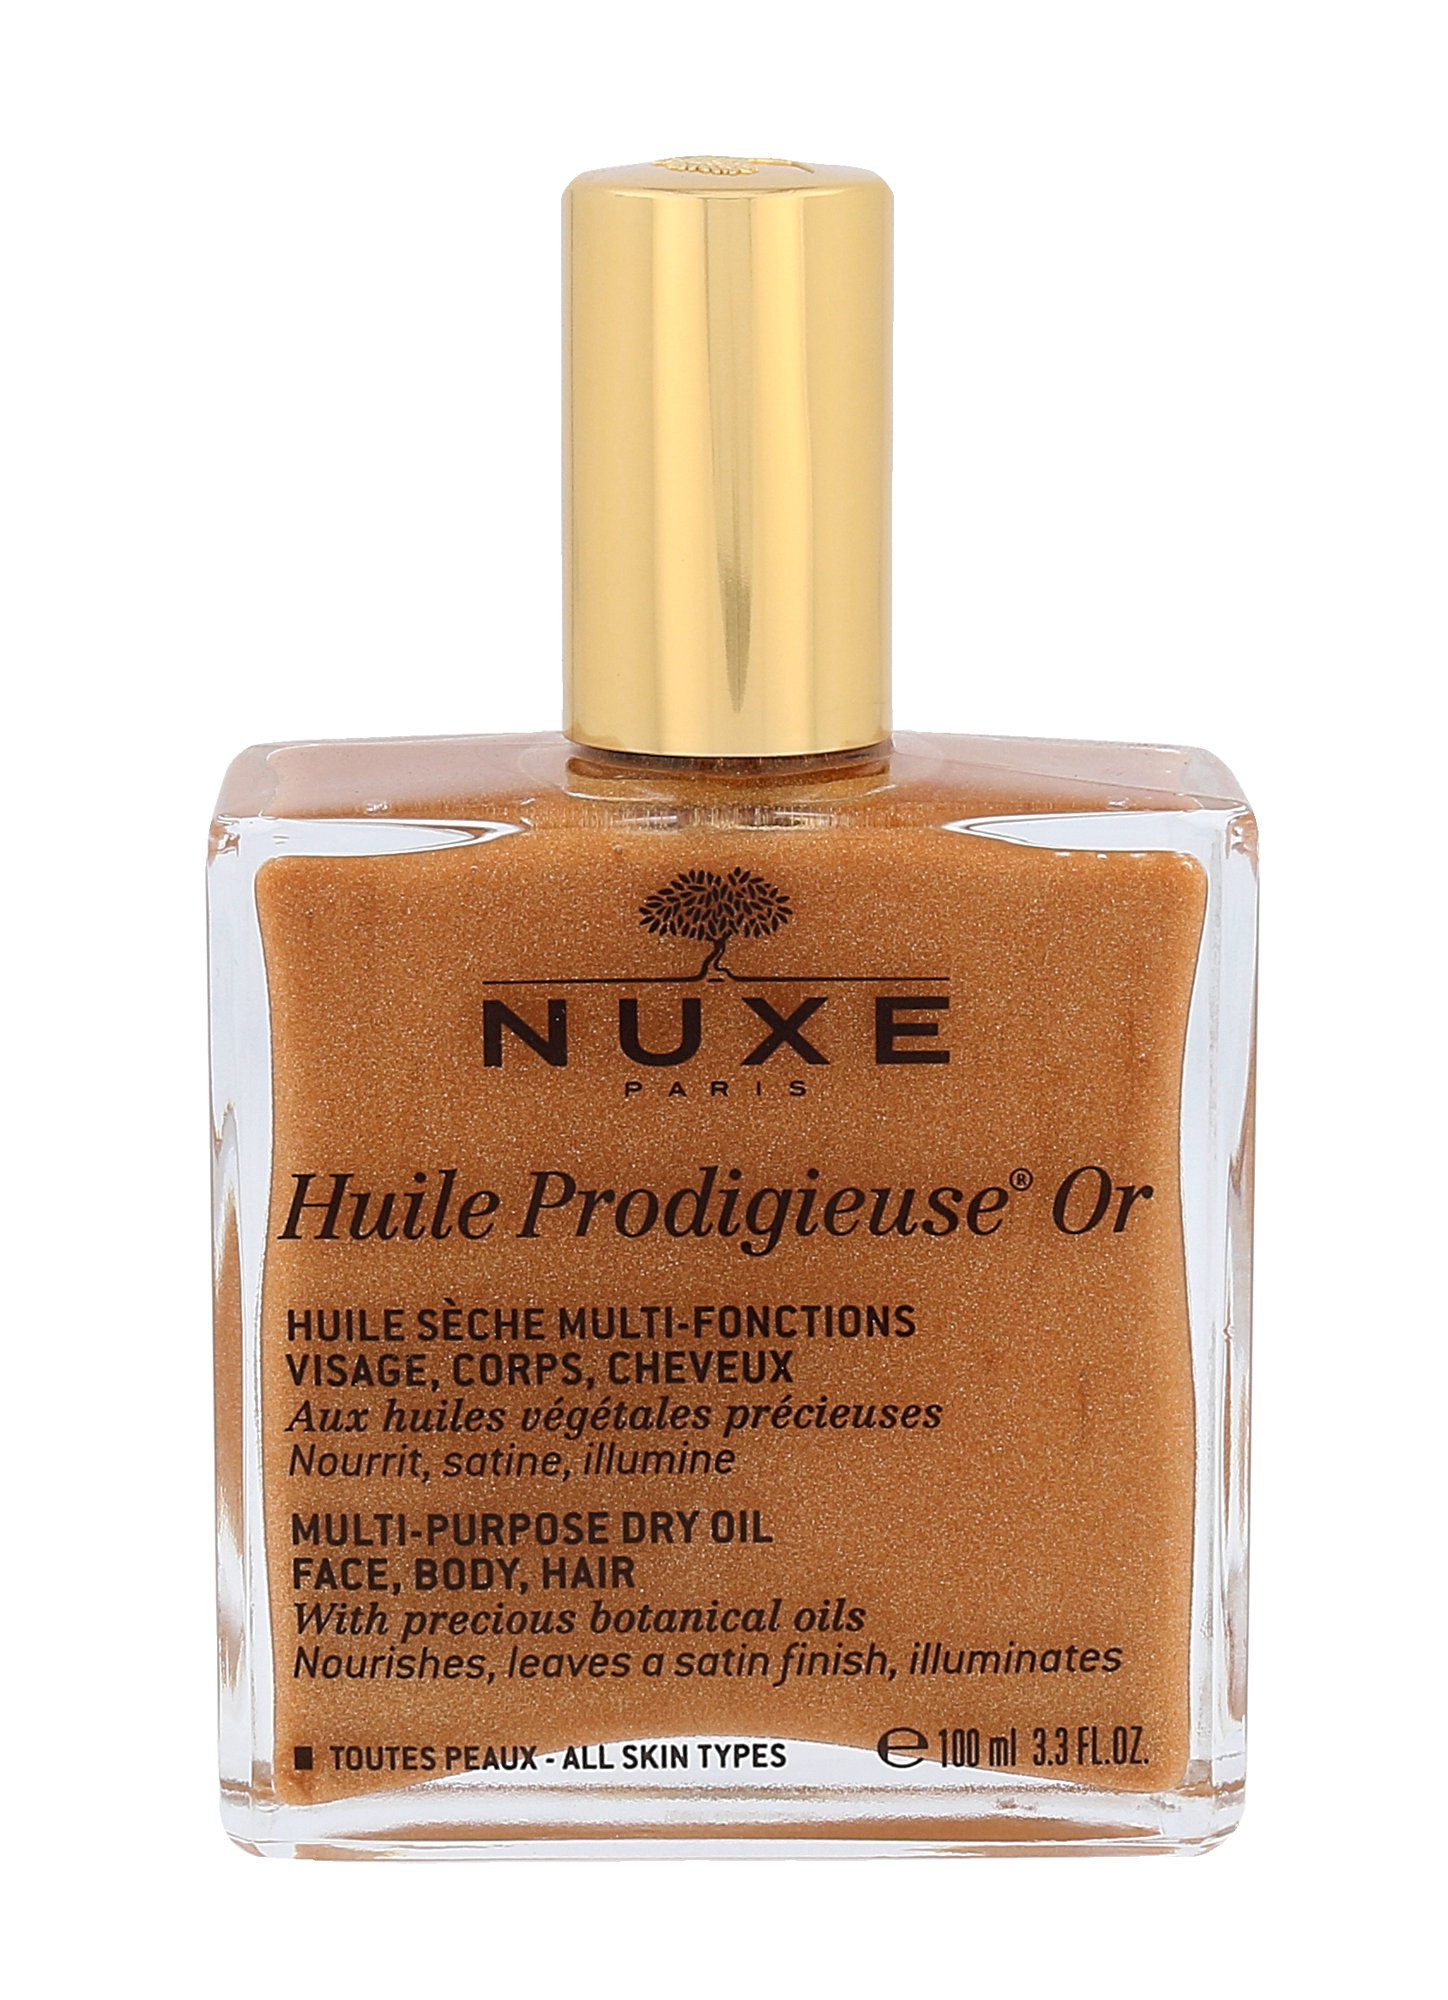 NUXE Huile Prodigieuse Or Multi Purpose Dry Oil Face, Body, Hair, Telový olej 100ml